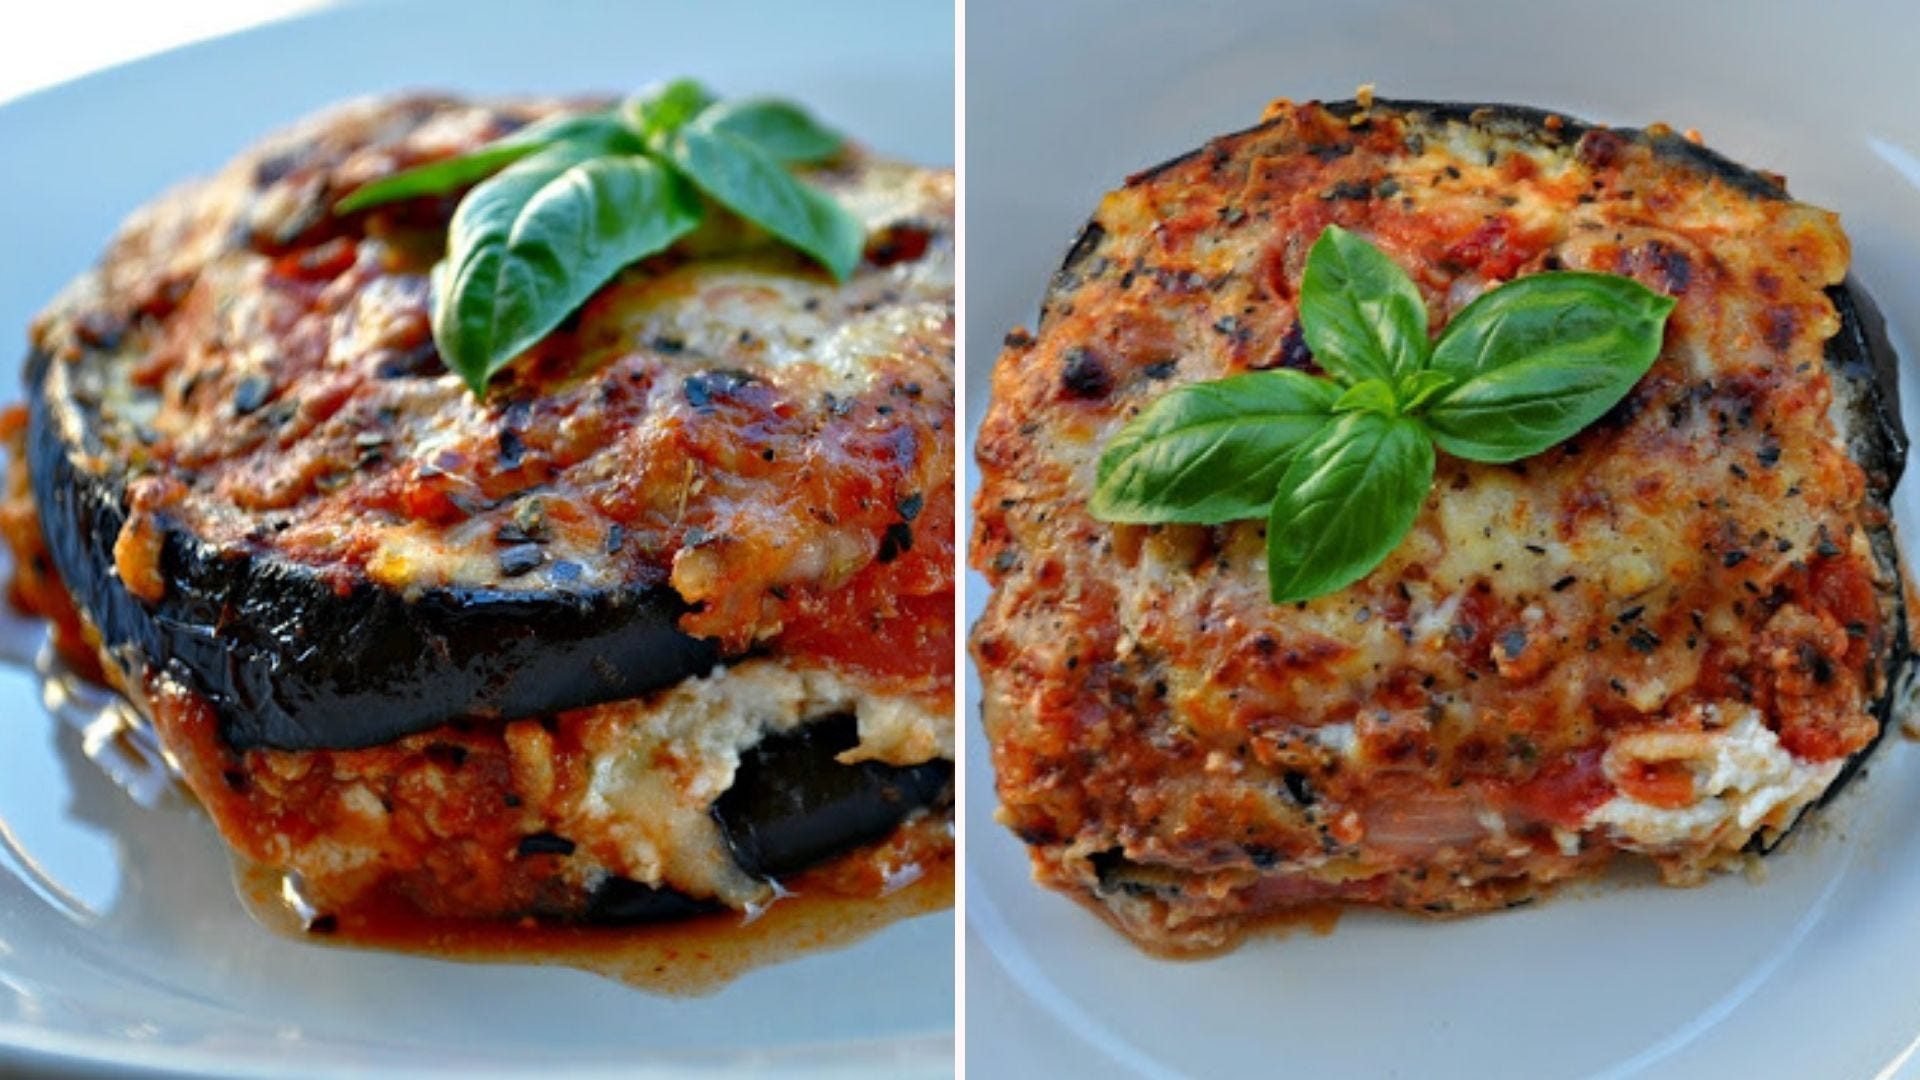 Two images in two different angles, displaying eggplant lasagna topped with fresh basil leaves.